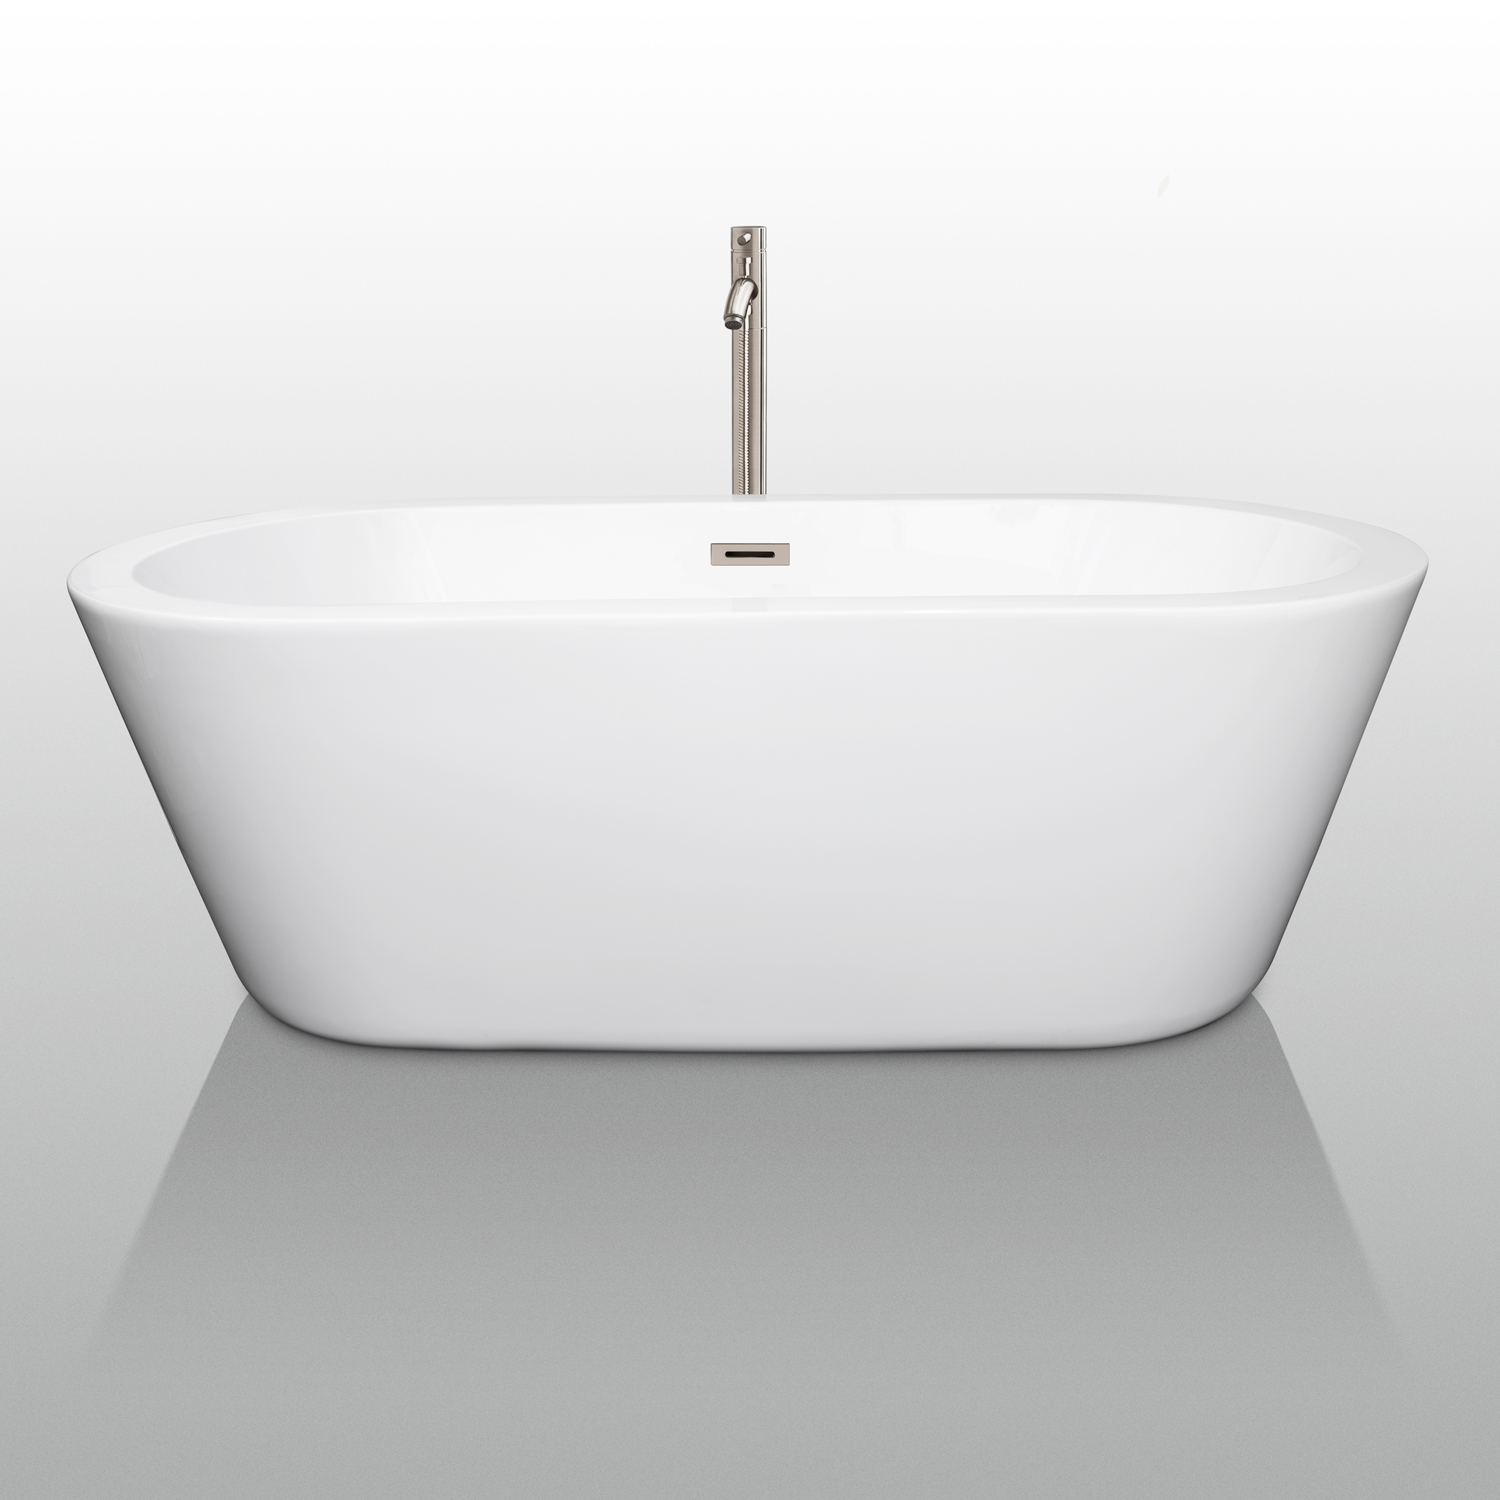 Mermaid 67 Soaking Bathtub By Wyndham Collection White Beautiful Bathroom Furniture For Every Home Wyndham Collection